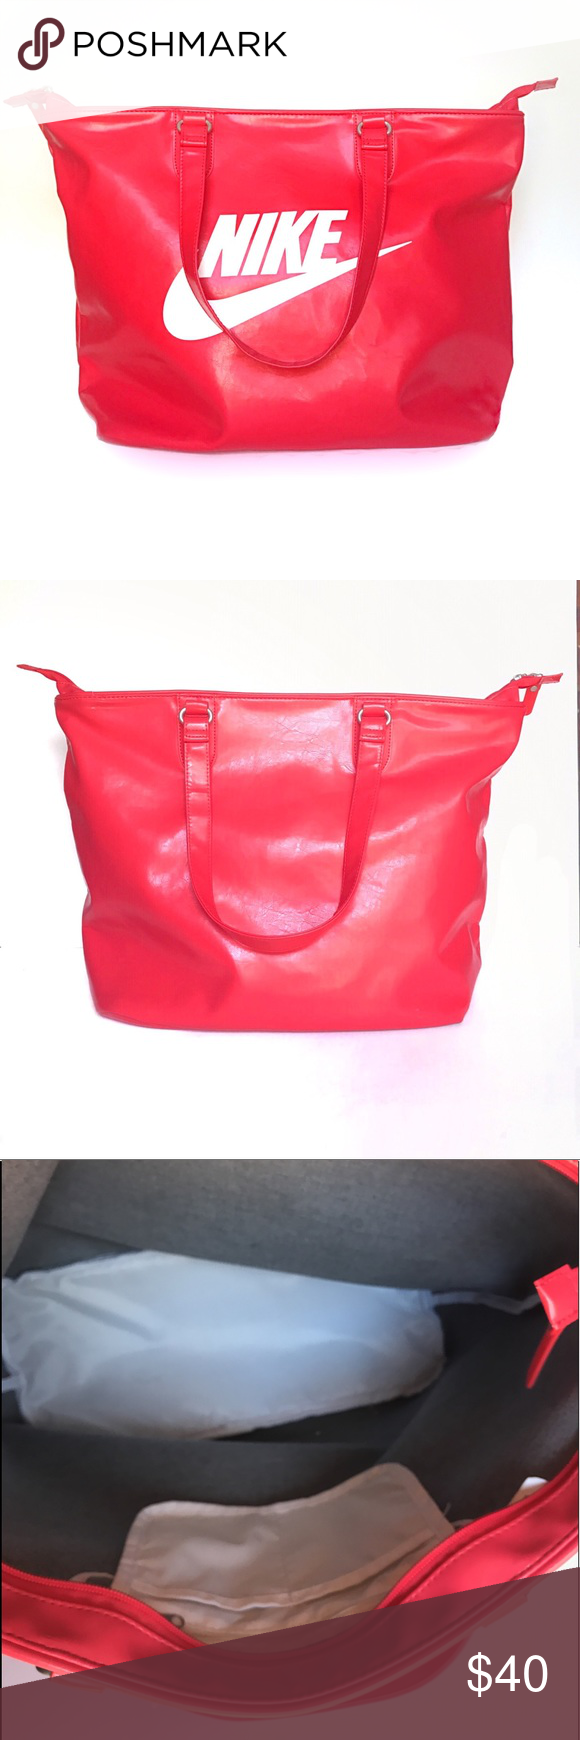 6d957d7703c8 Color- Pink Condition- Gentle Use.  Only visible sign of wear is underside  of handle has small marking. 20.1 X 7.5 X 13.4 Nike Bags Totes. NIKE  Heritage SI ...